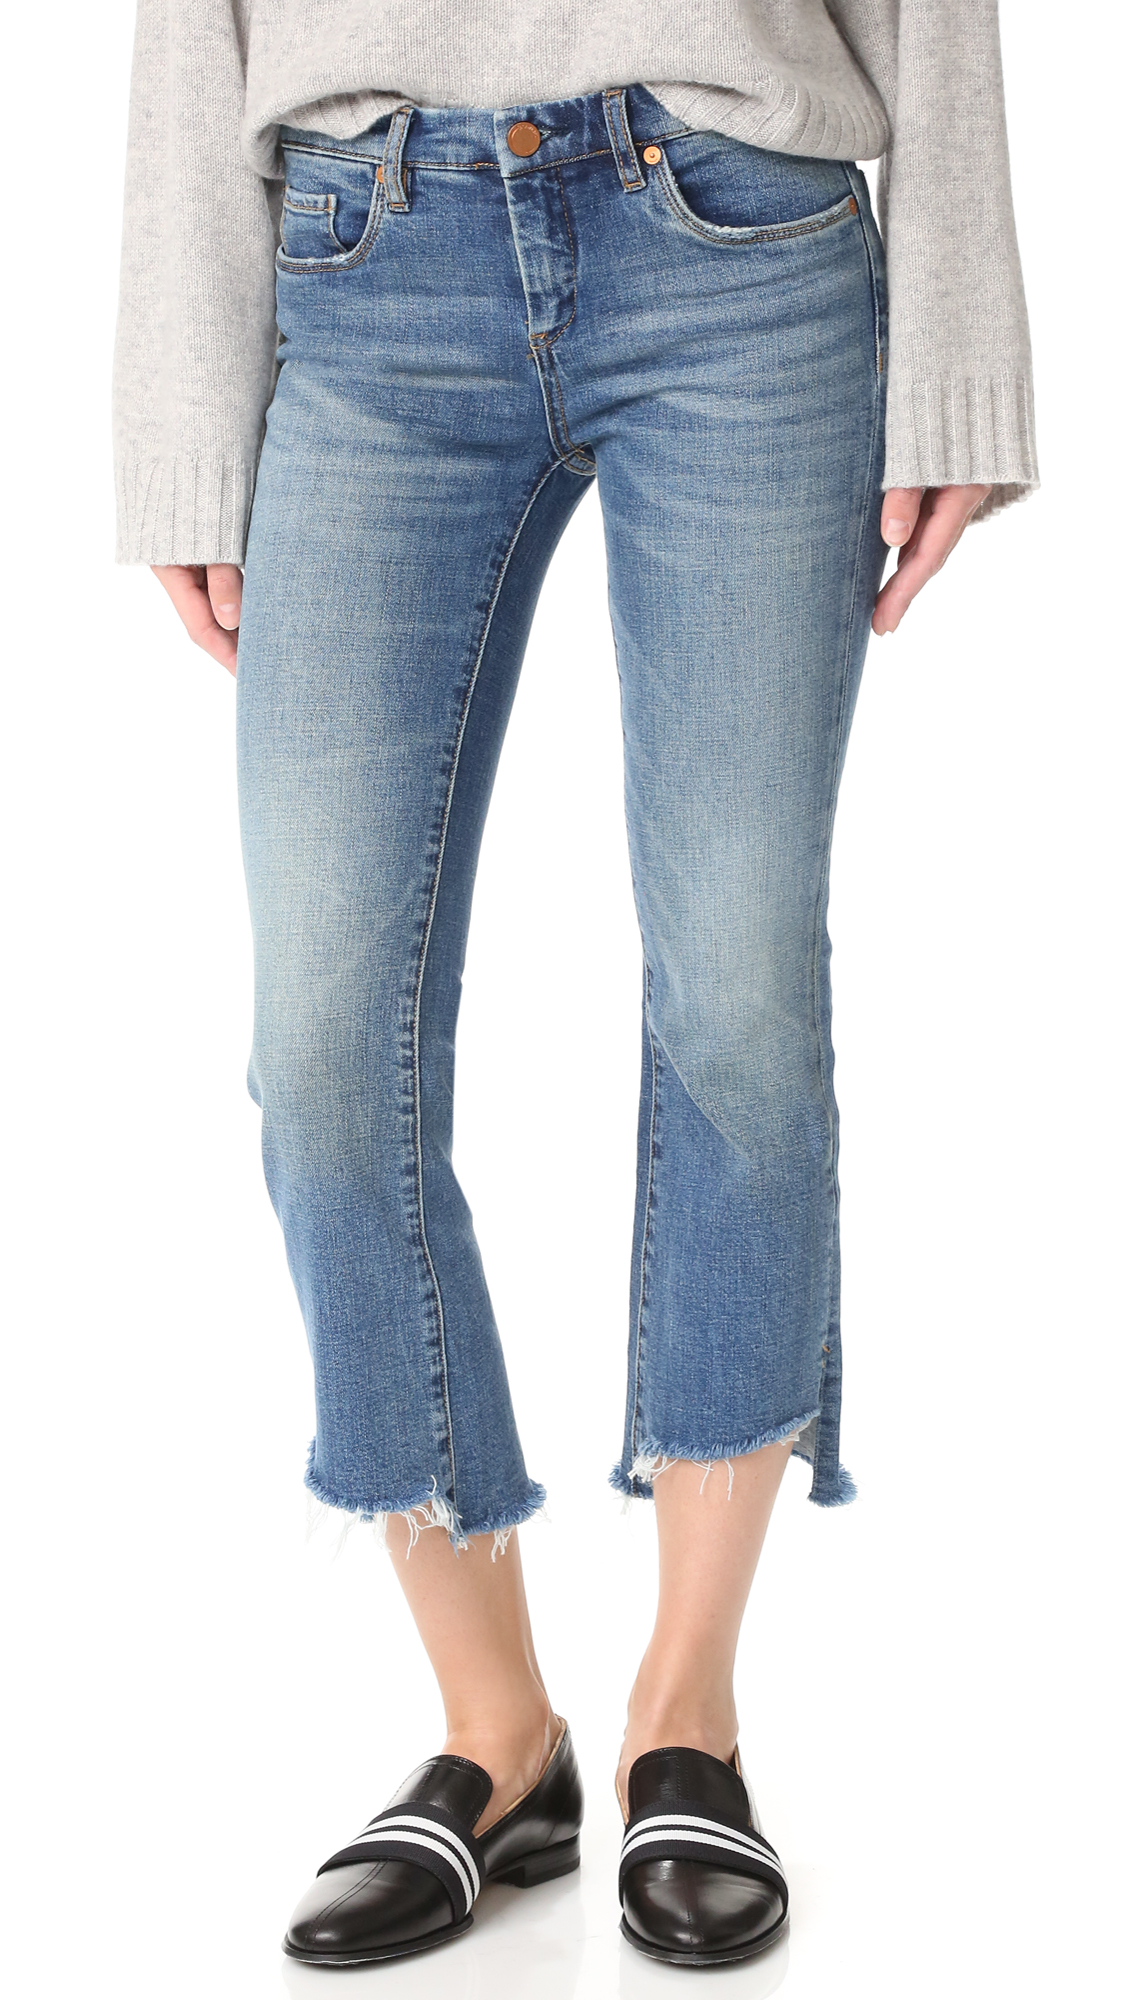 Allover fading and a frayed step hem give these flared Blank Denim jeans a deconstructed look. Worn edges. 5 pocket styling. Button closure and zip fly. Fabric: Stretch denim. 99% cotton/1% spandex. Wash cold. Imported, China. Measurements Rise: 9